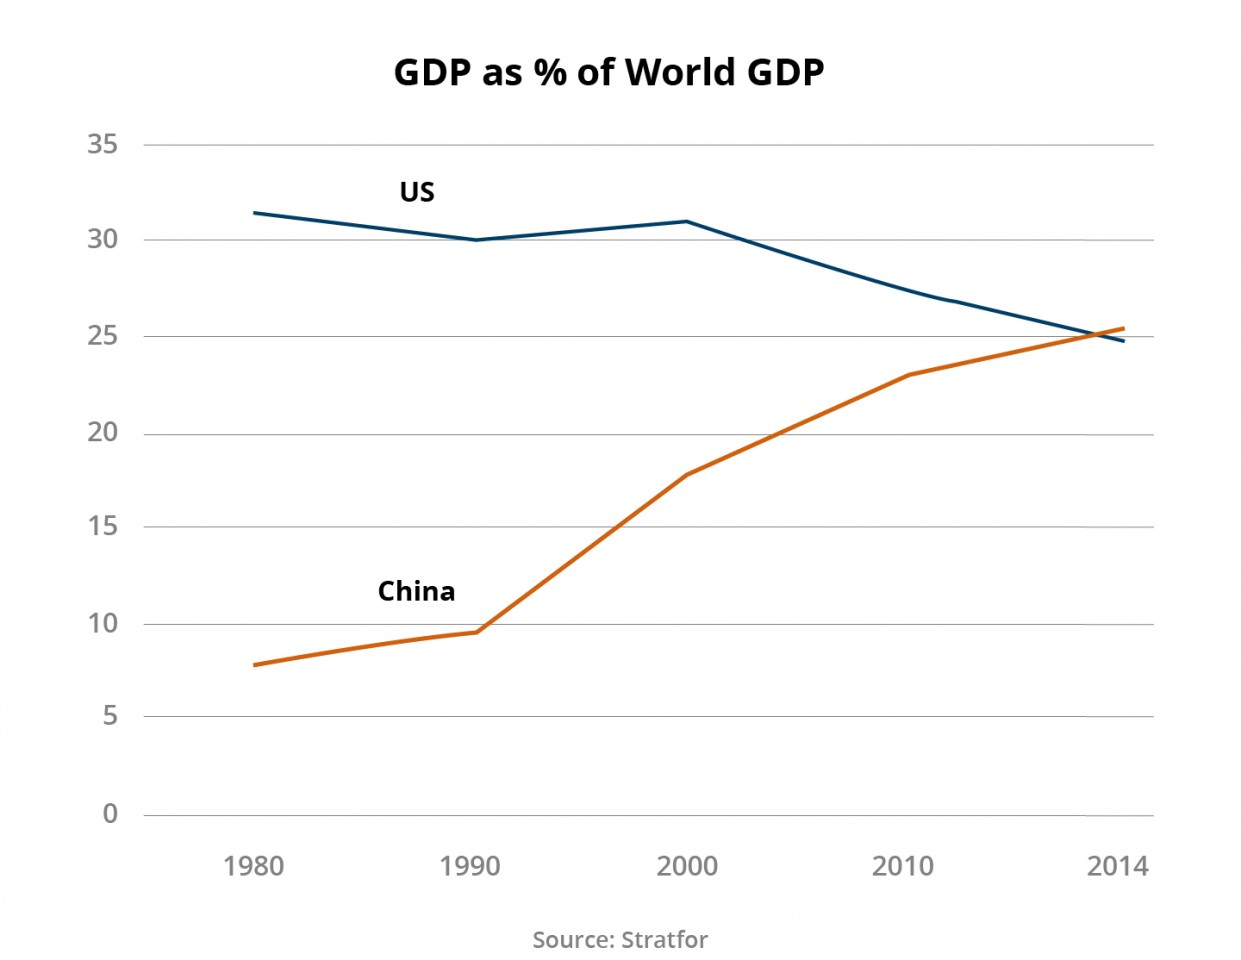 Figure 1: GDP as % of world GDP